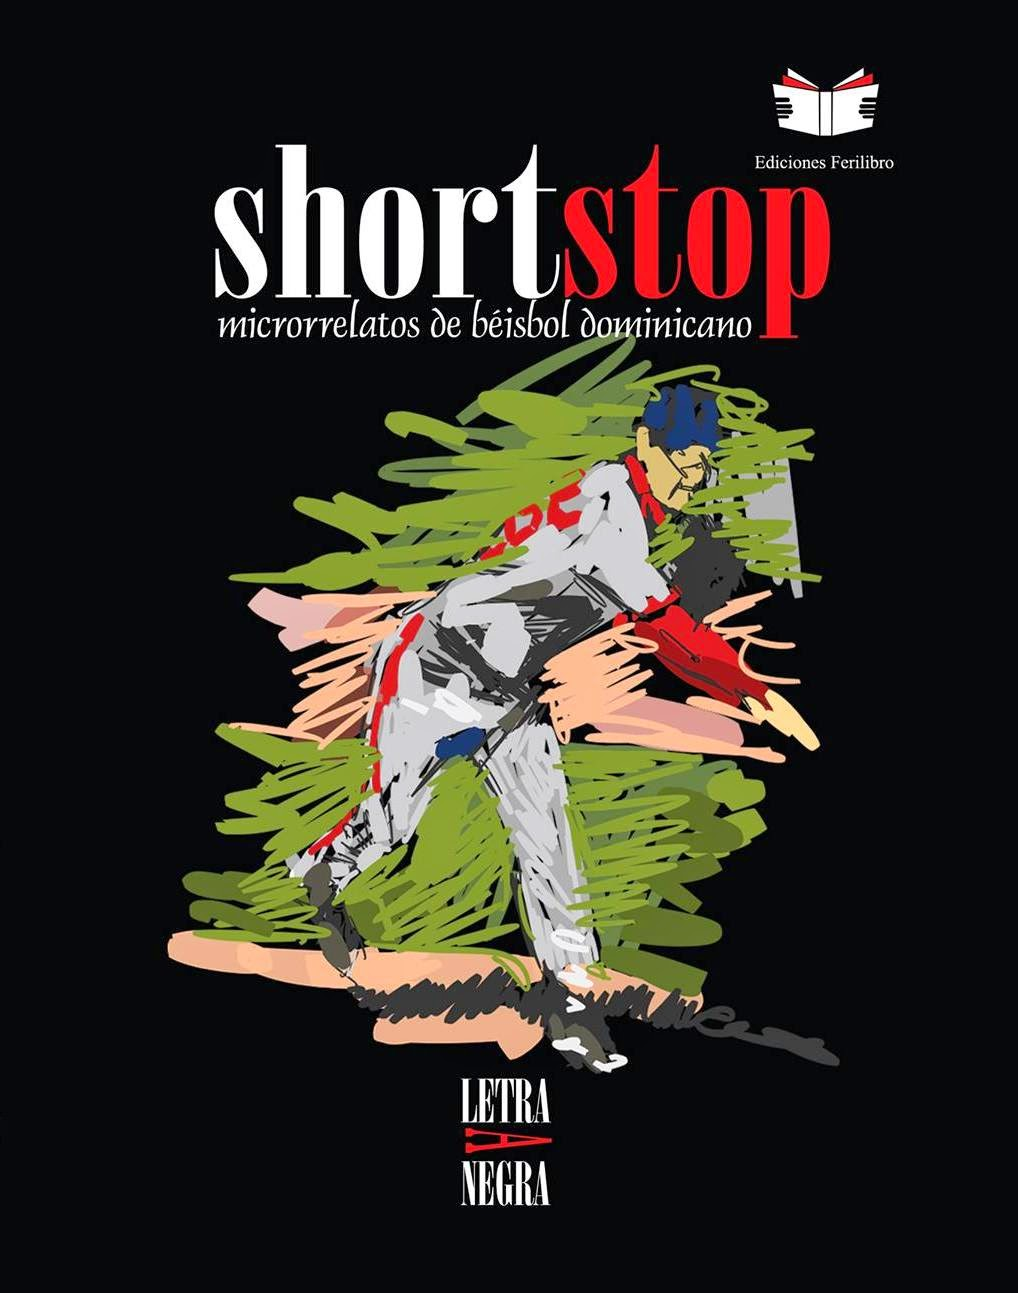 Shortstop (microrrelatos de béisbol dominicano)